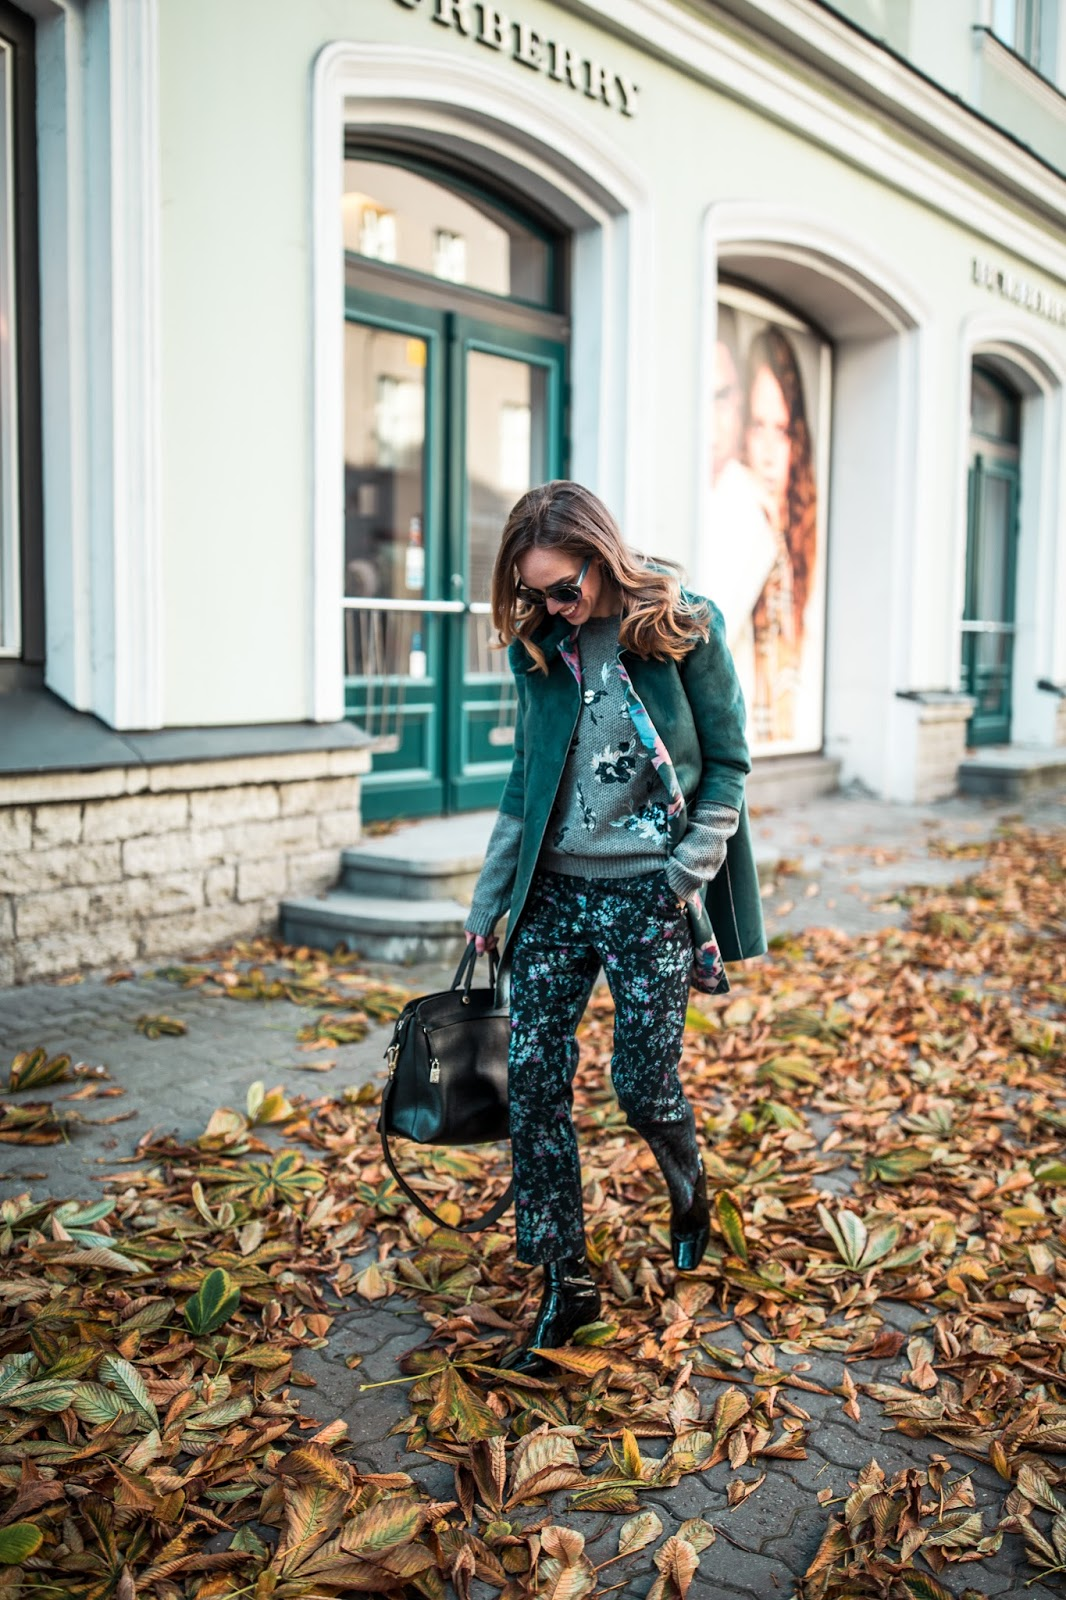 floral pants outfit street style fall